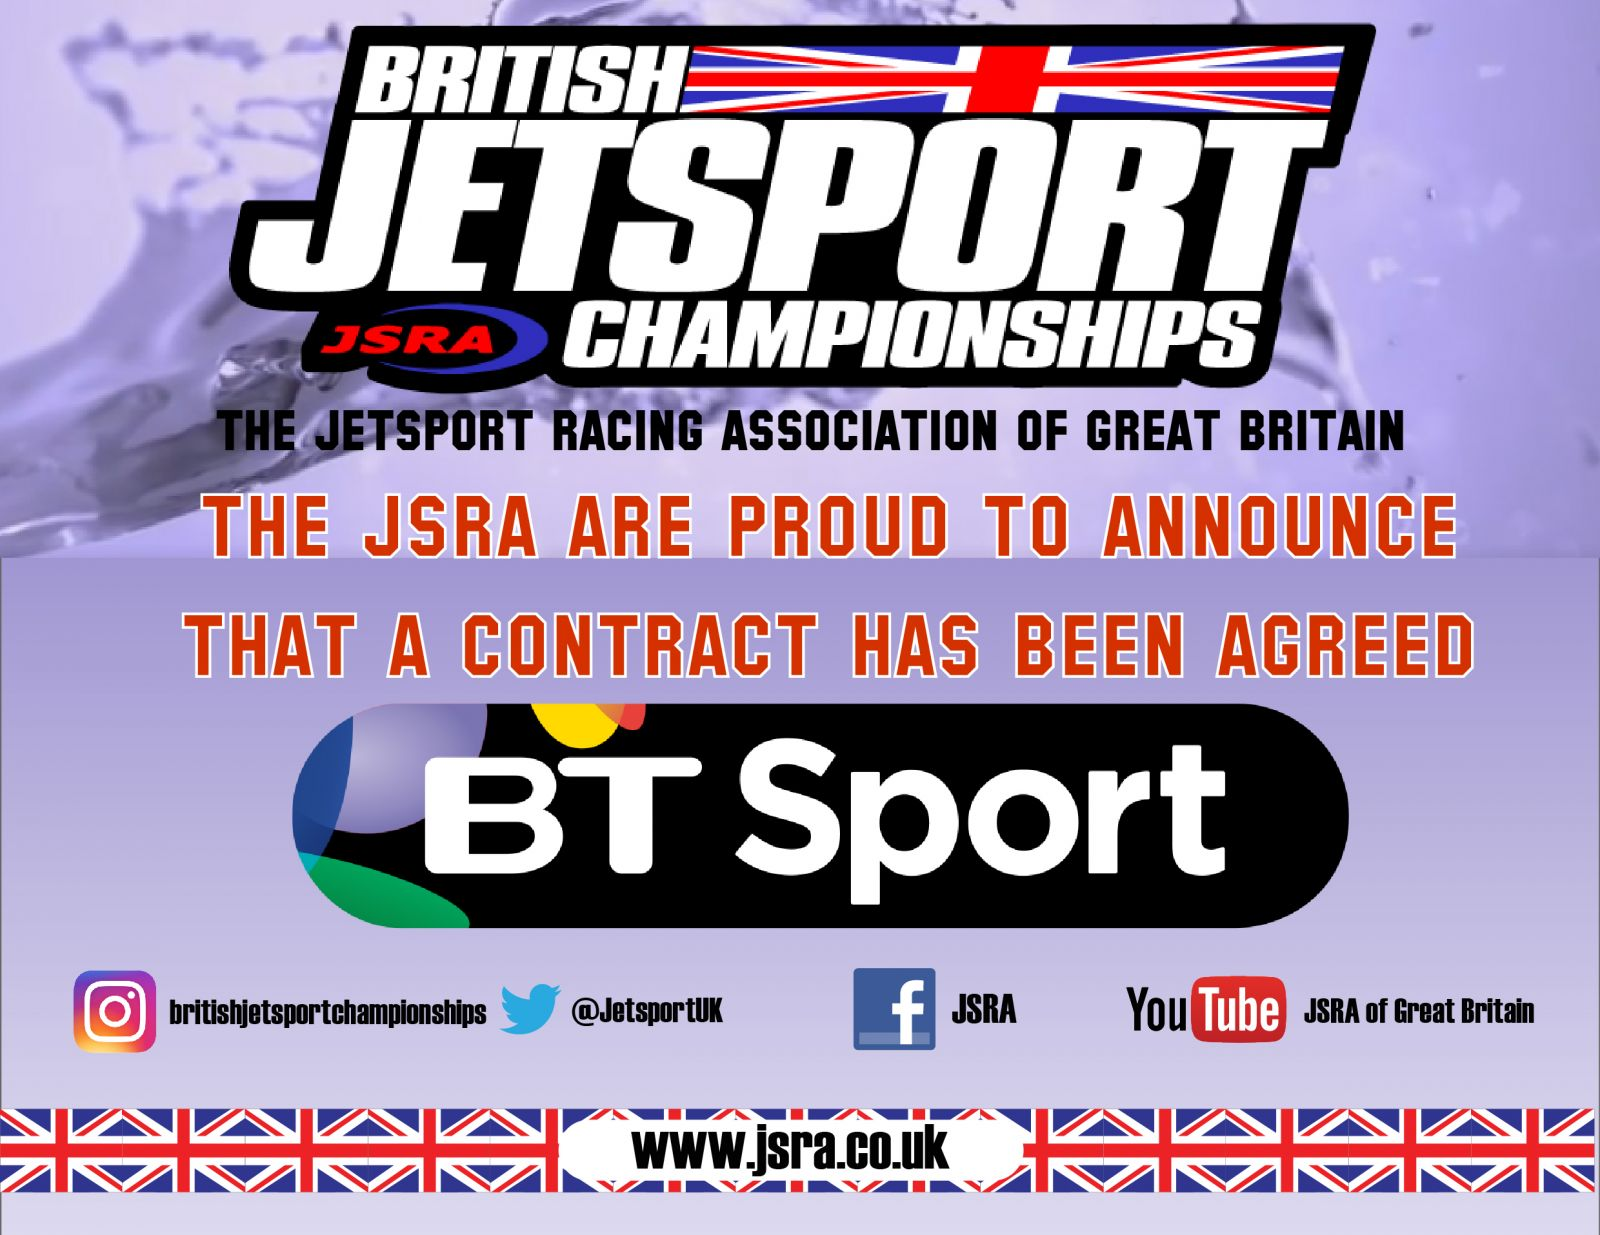 The JSRA are pleased to announce a TV deal with BT sport